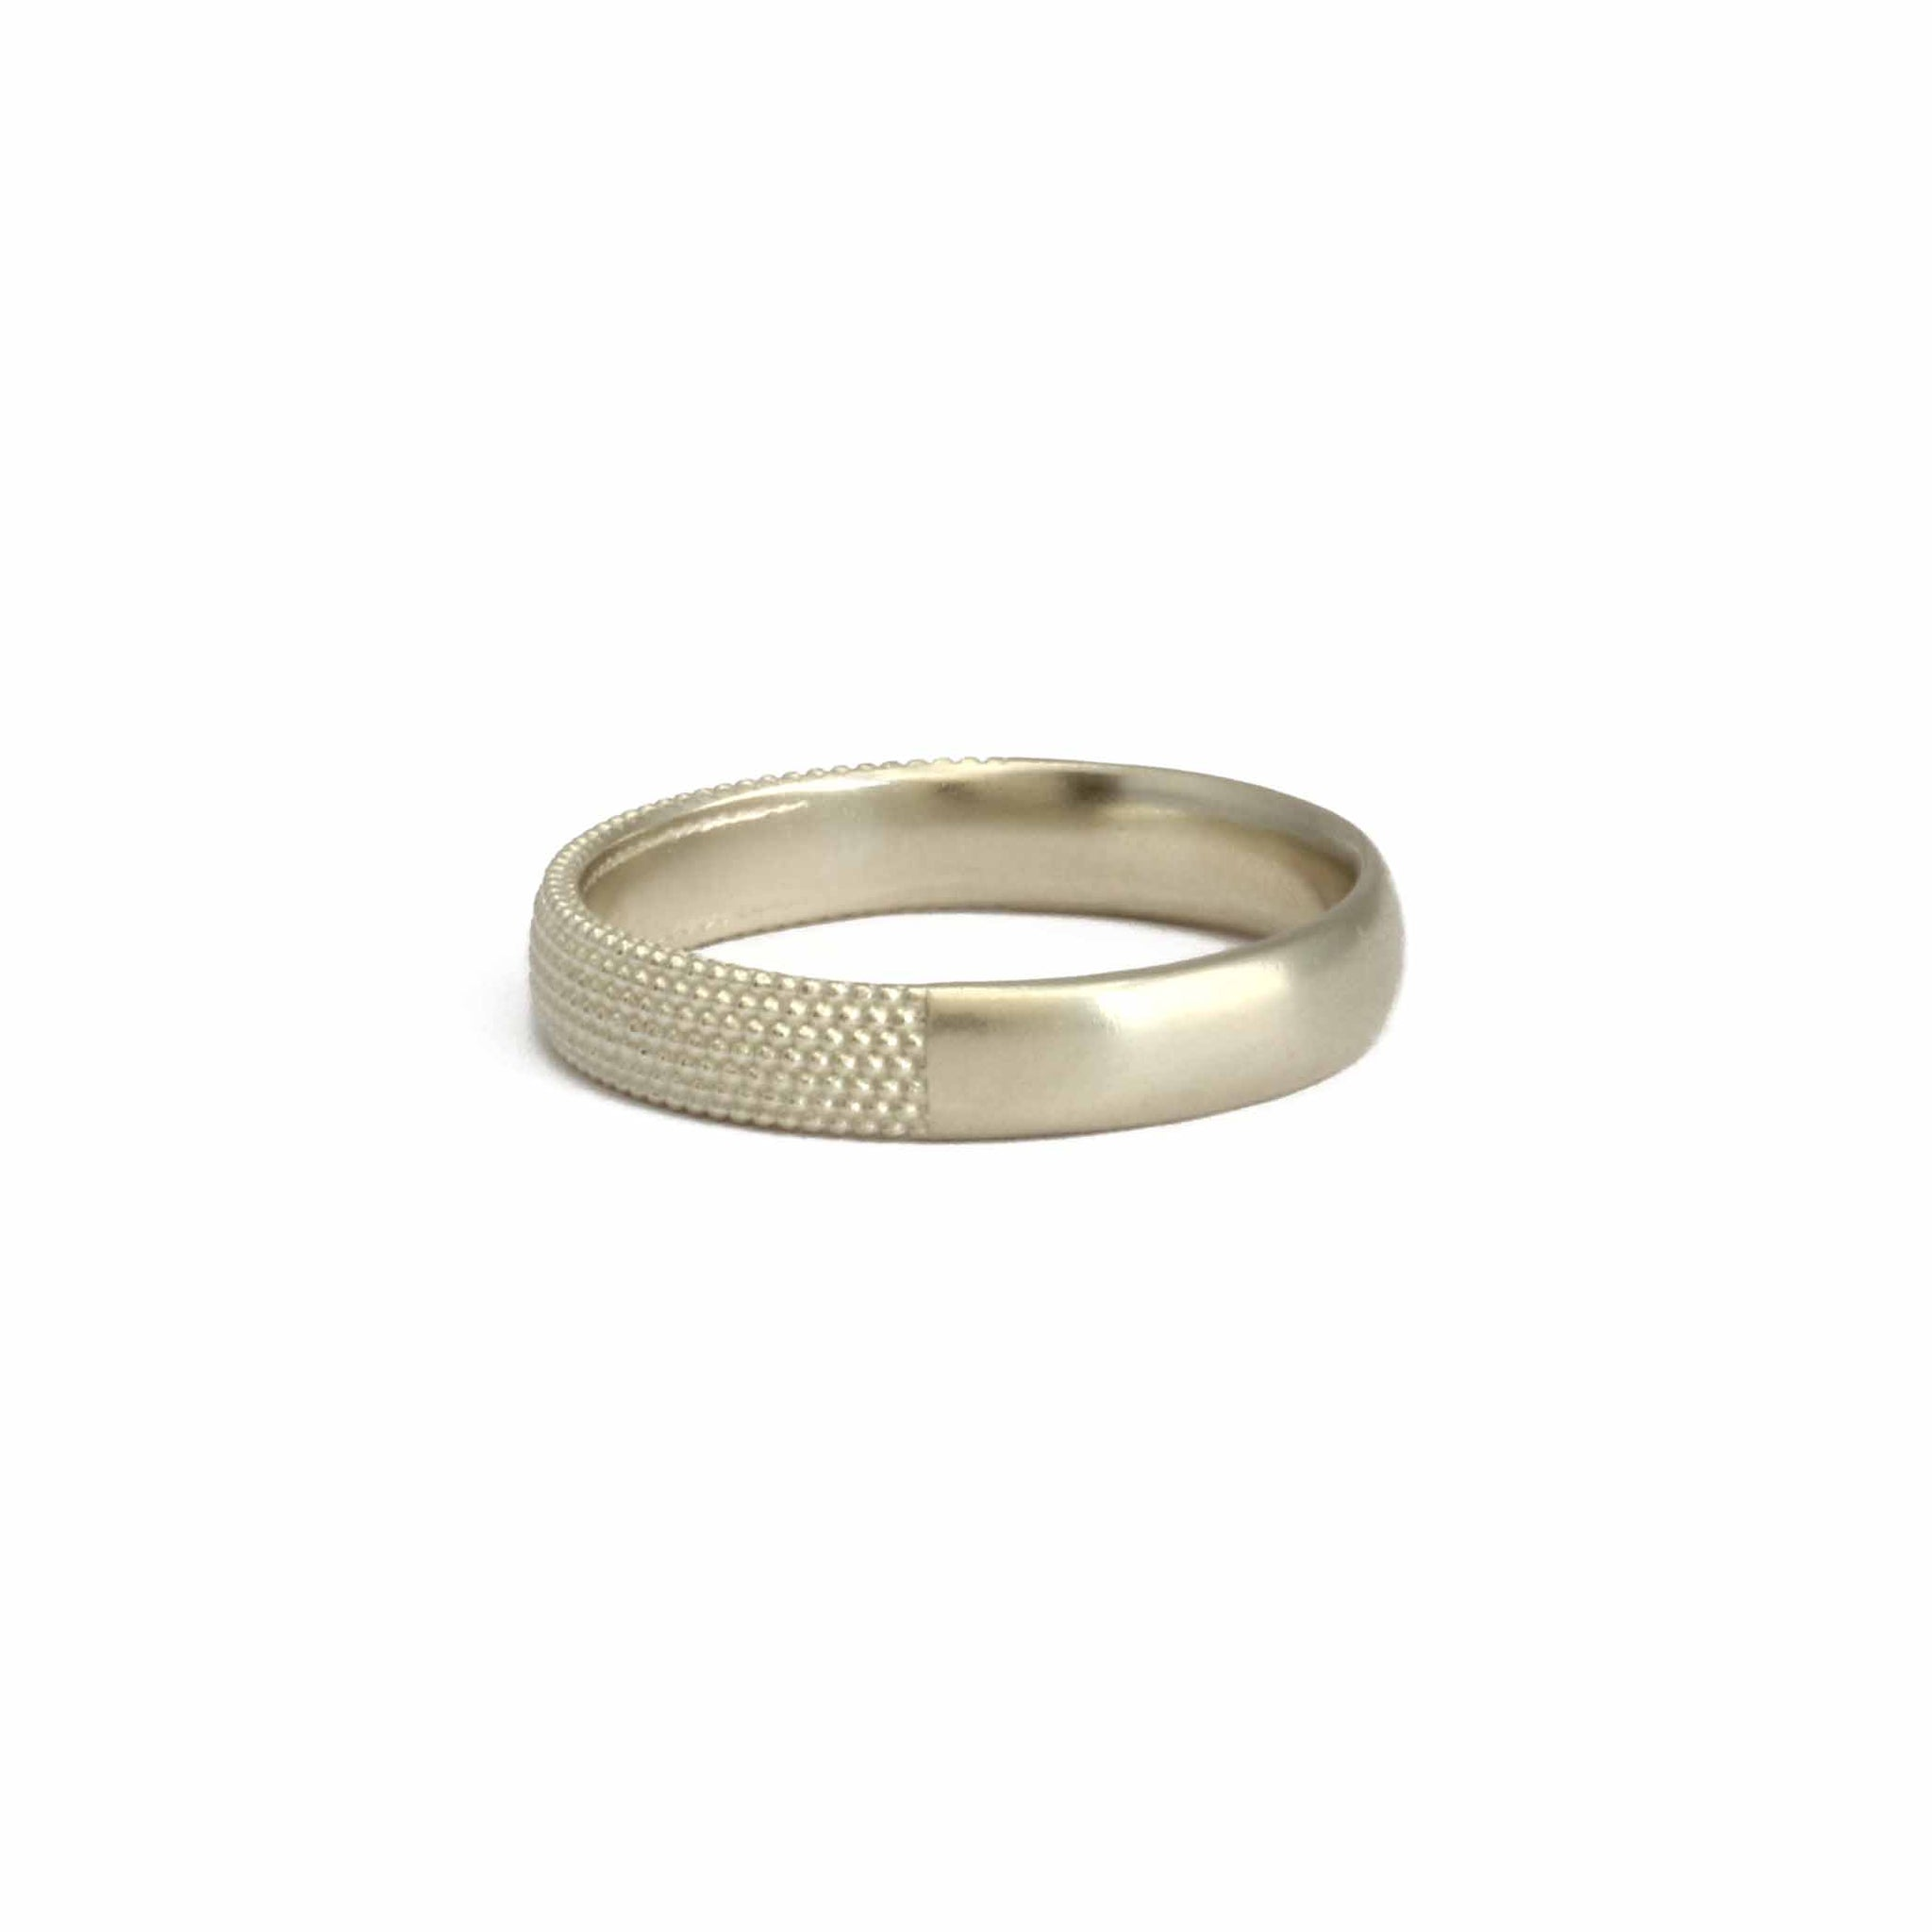 4mm Tyro Half Band 9ct gold